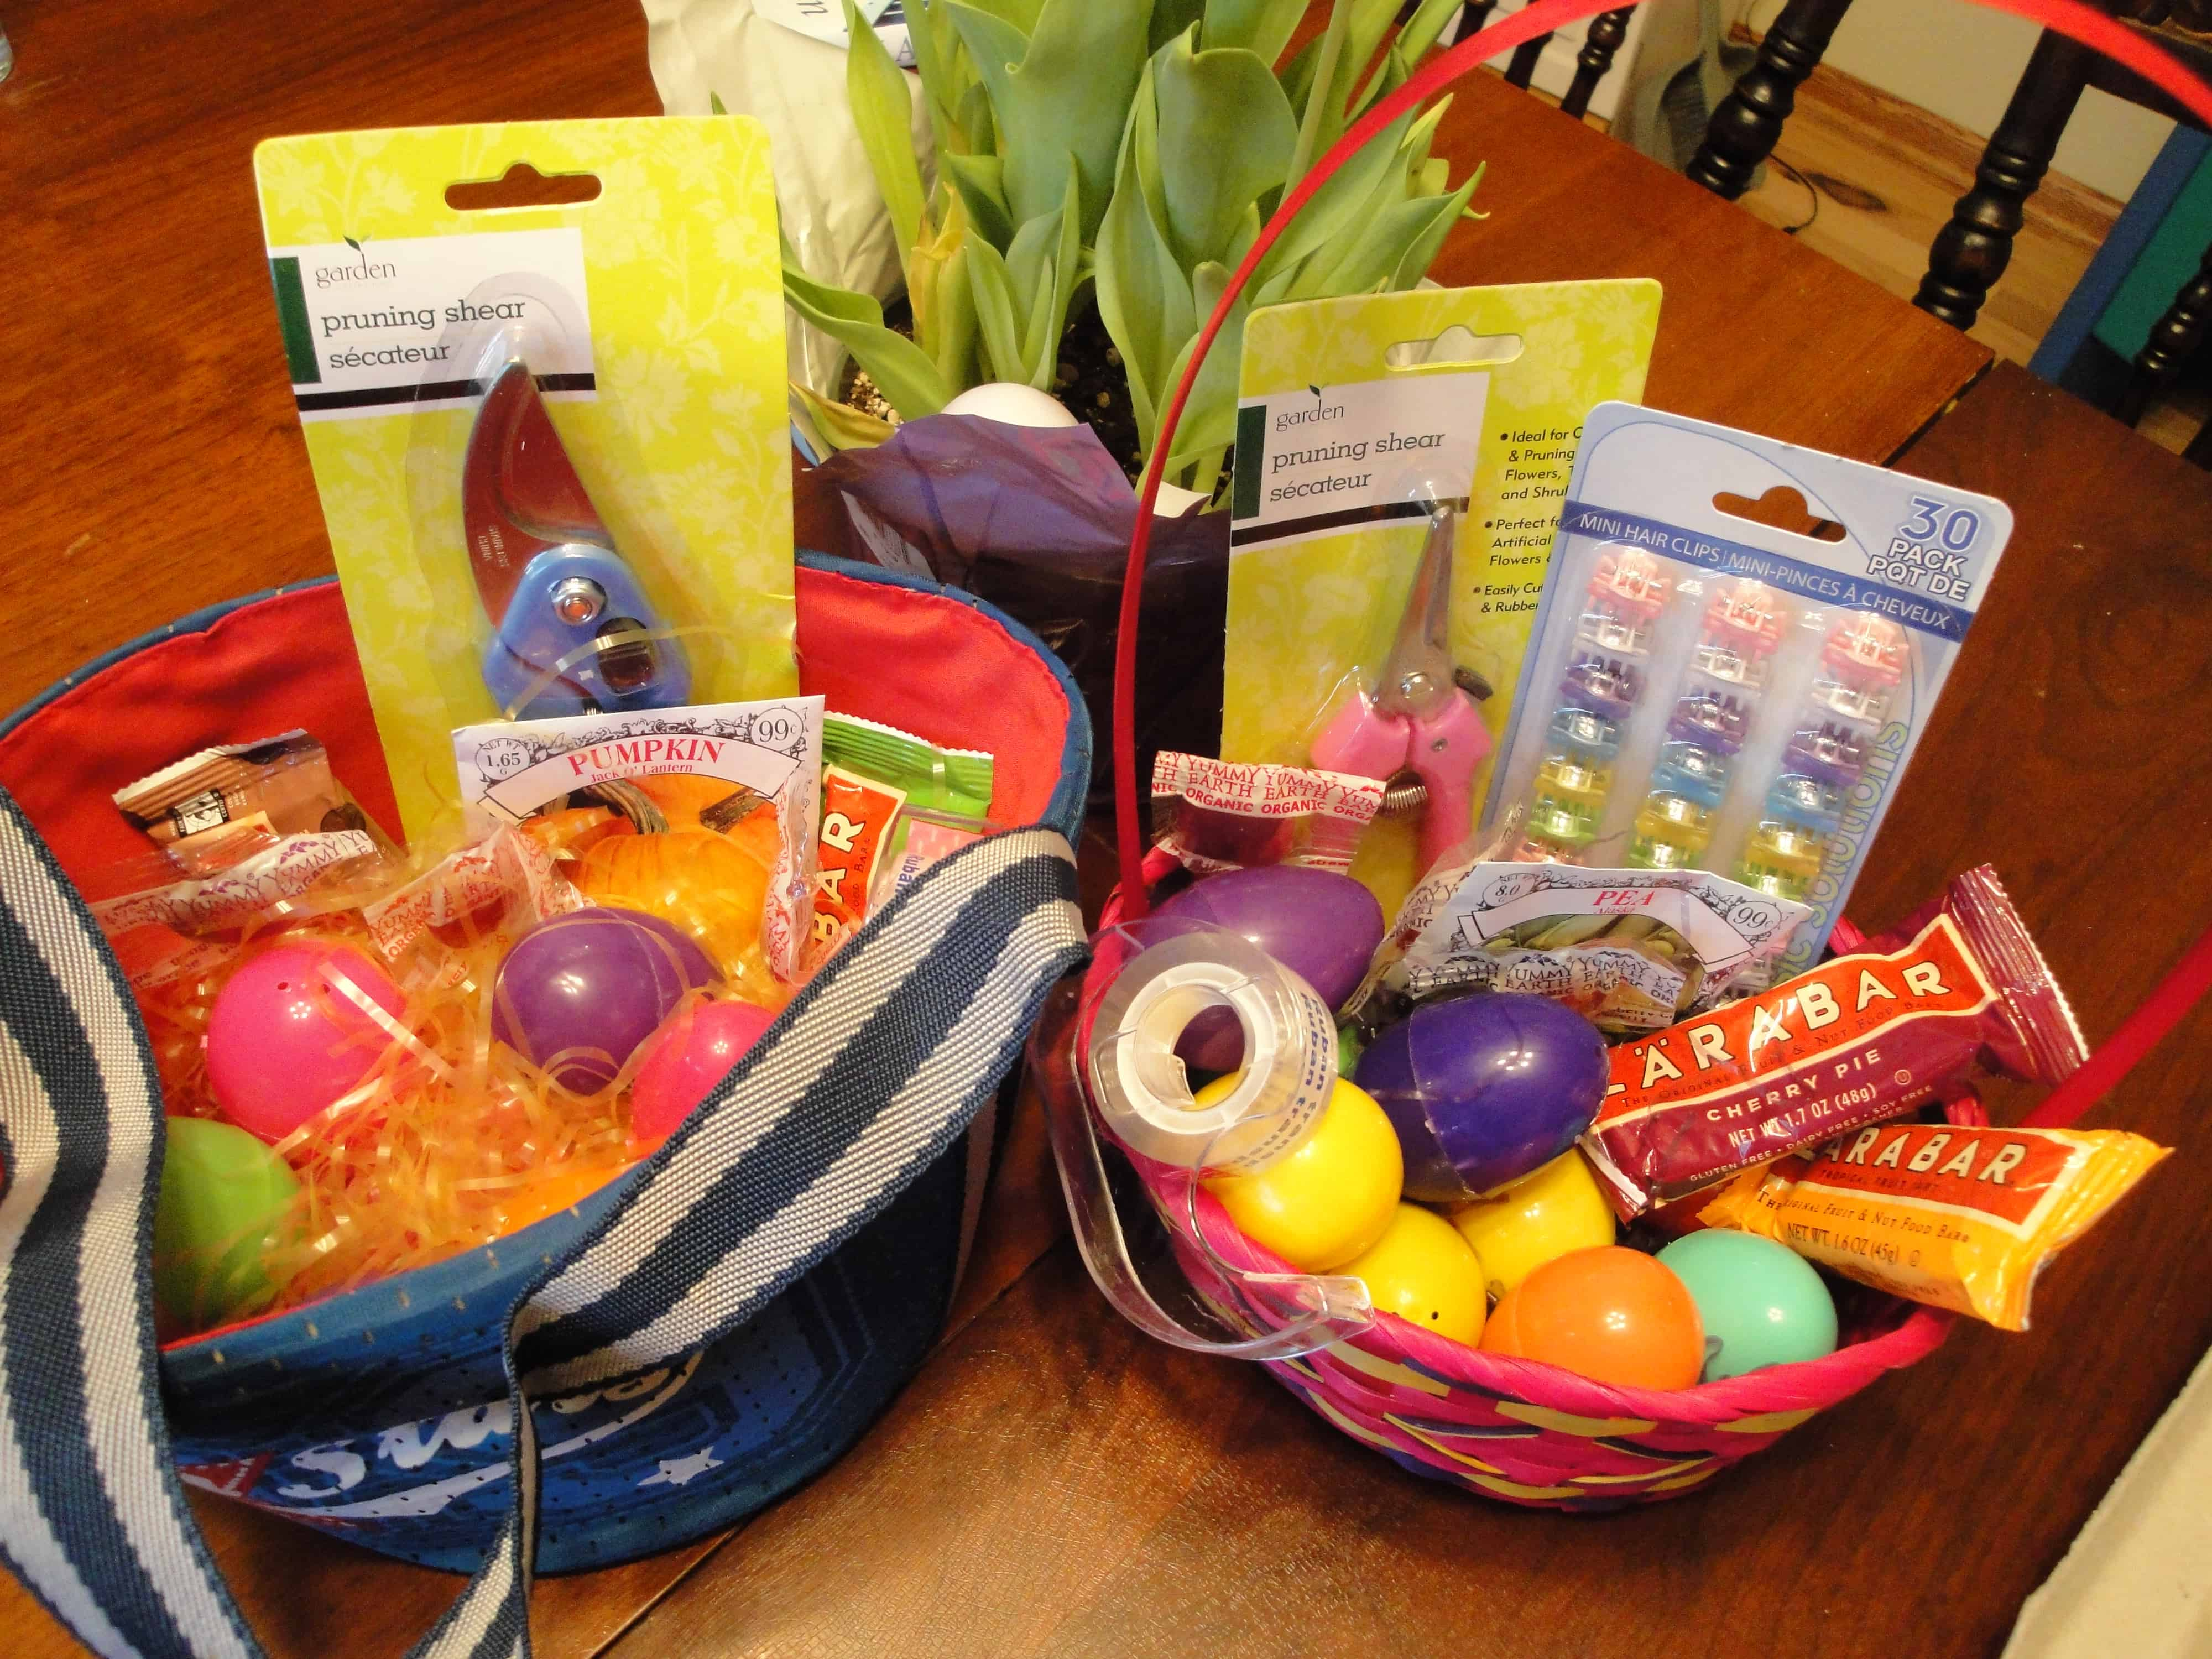 Real food healthy easter basket ideas with no junk tired of candy and junky toys in the easter baskets tons of ideas here for negle Image collections